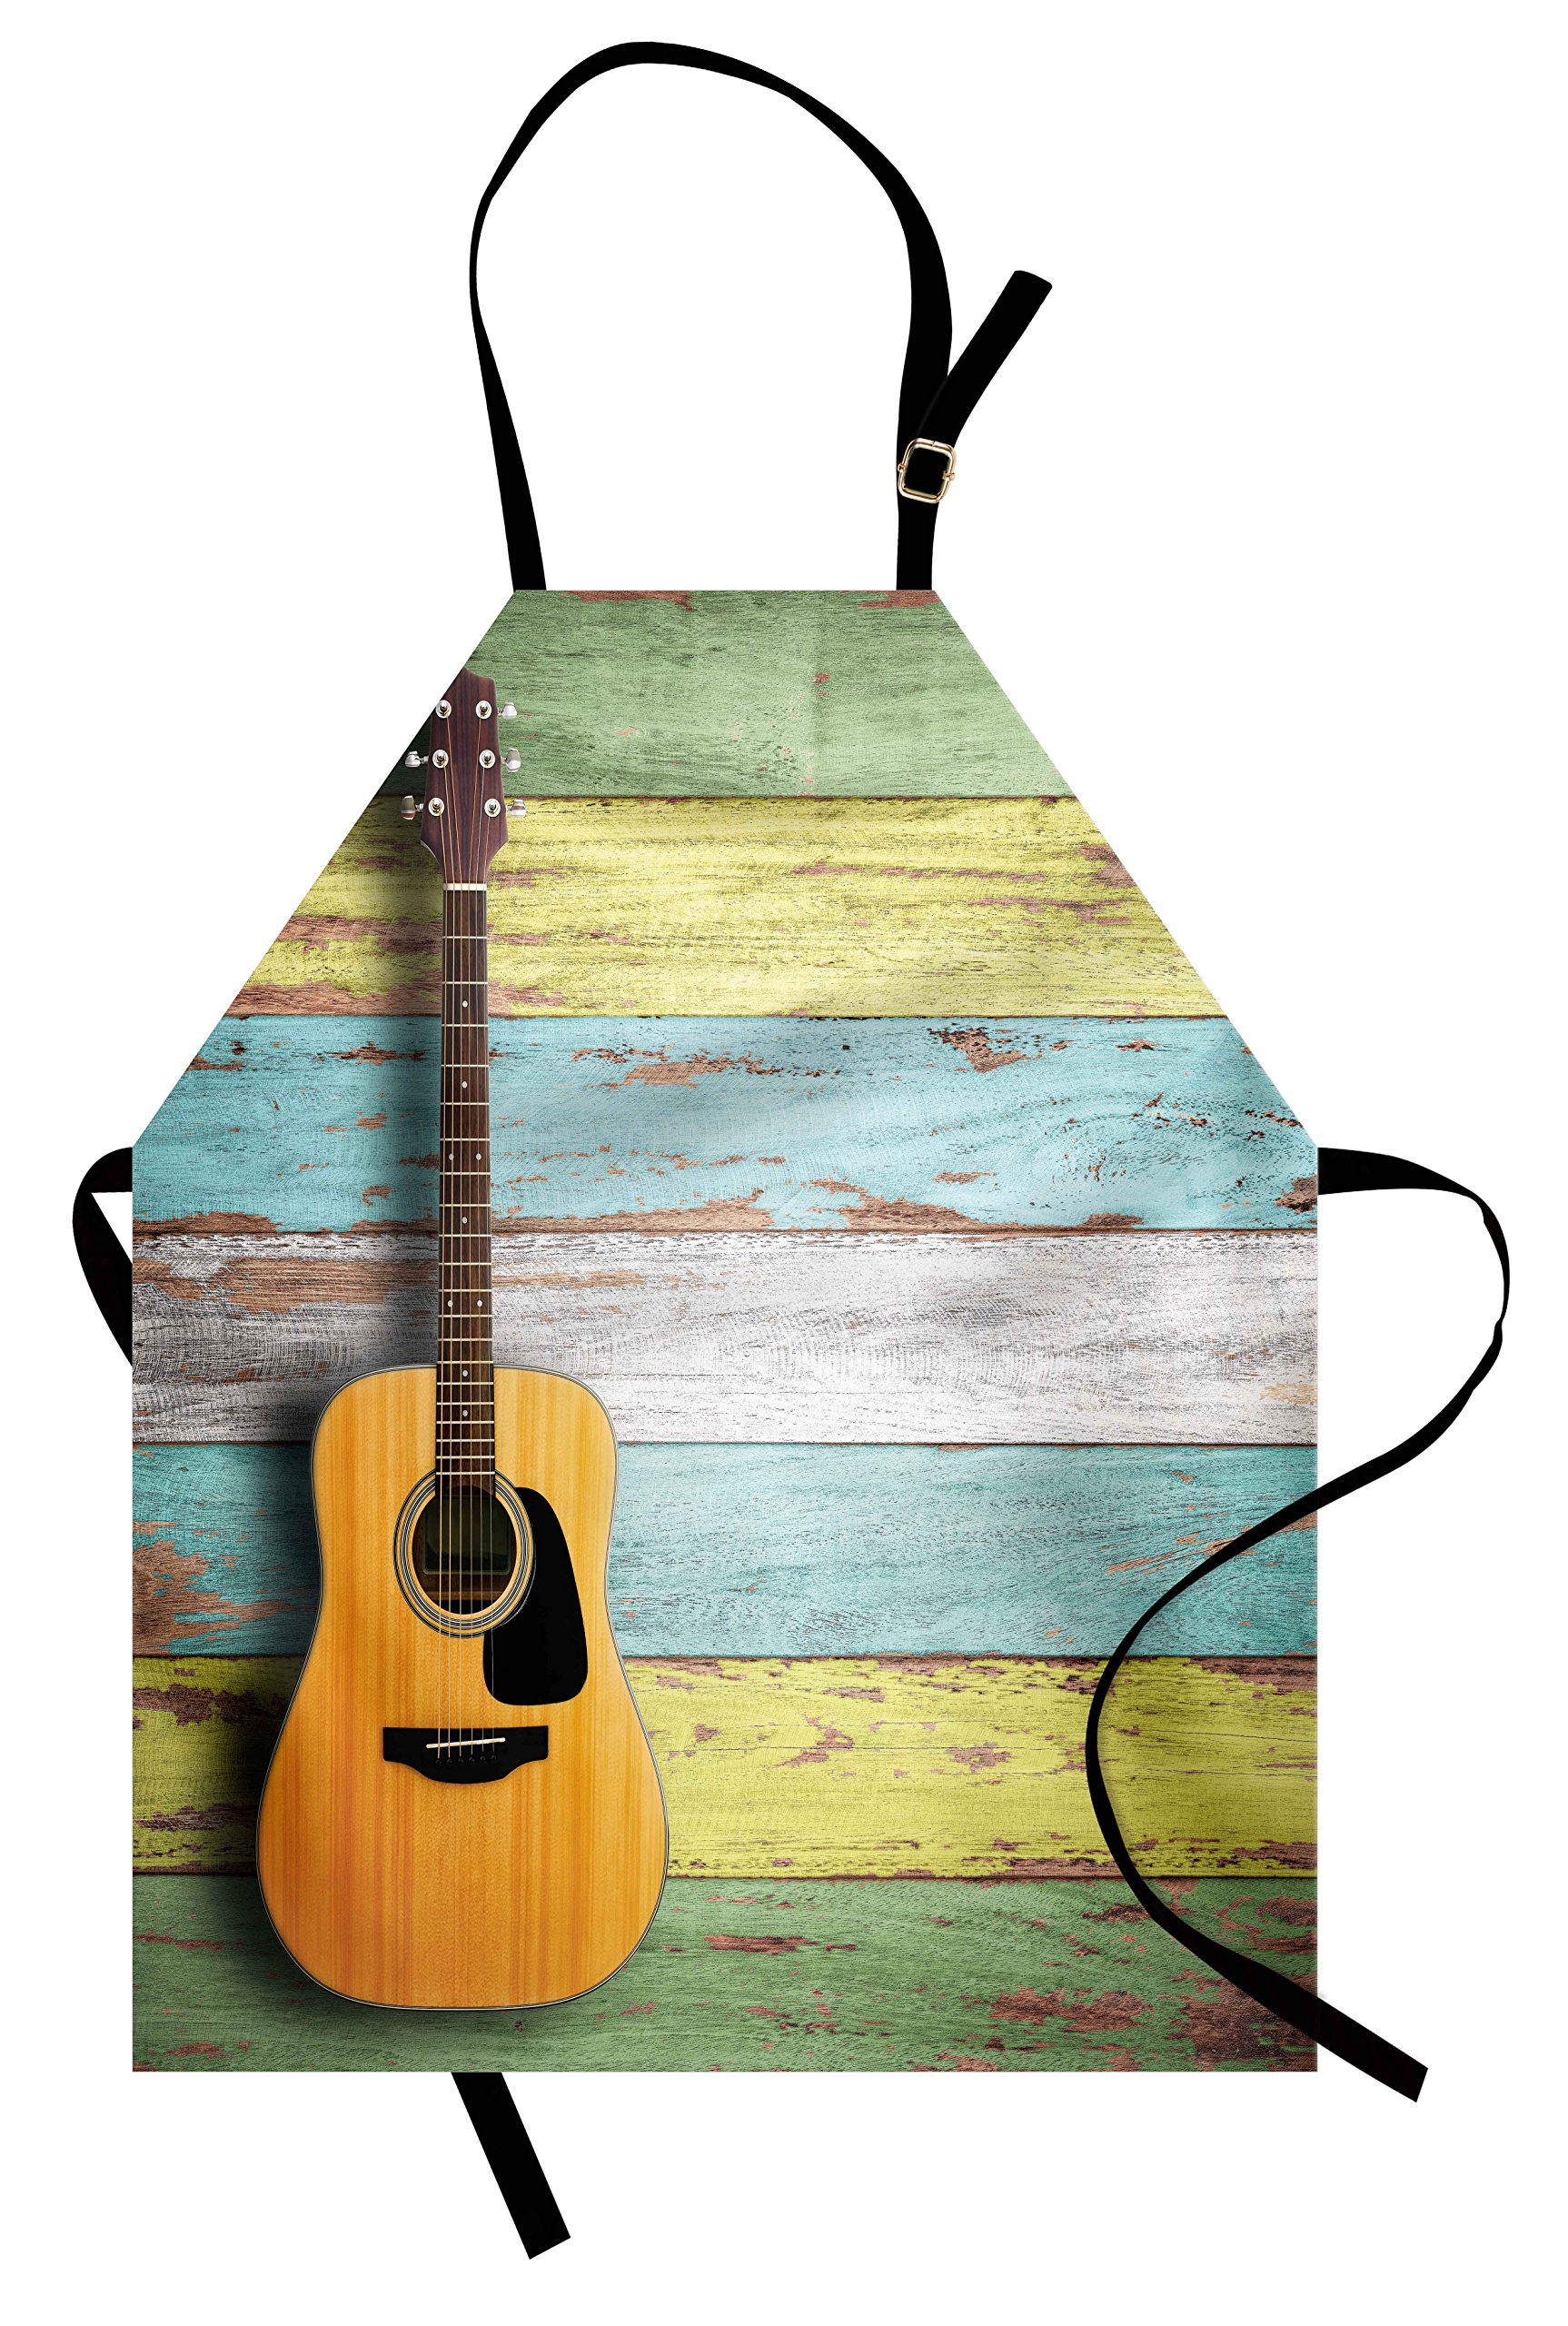 Ambesonne Music Apron, Acoustic Guitar on Colorful Painted Aged Wooden Planks Rustic Country Design Print, Unisex Kitchen Bib Apron with Adjustable Neck for Cooking Baking Gardening, Multicolor by Ambesonne (Image #1)